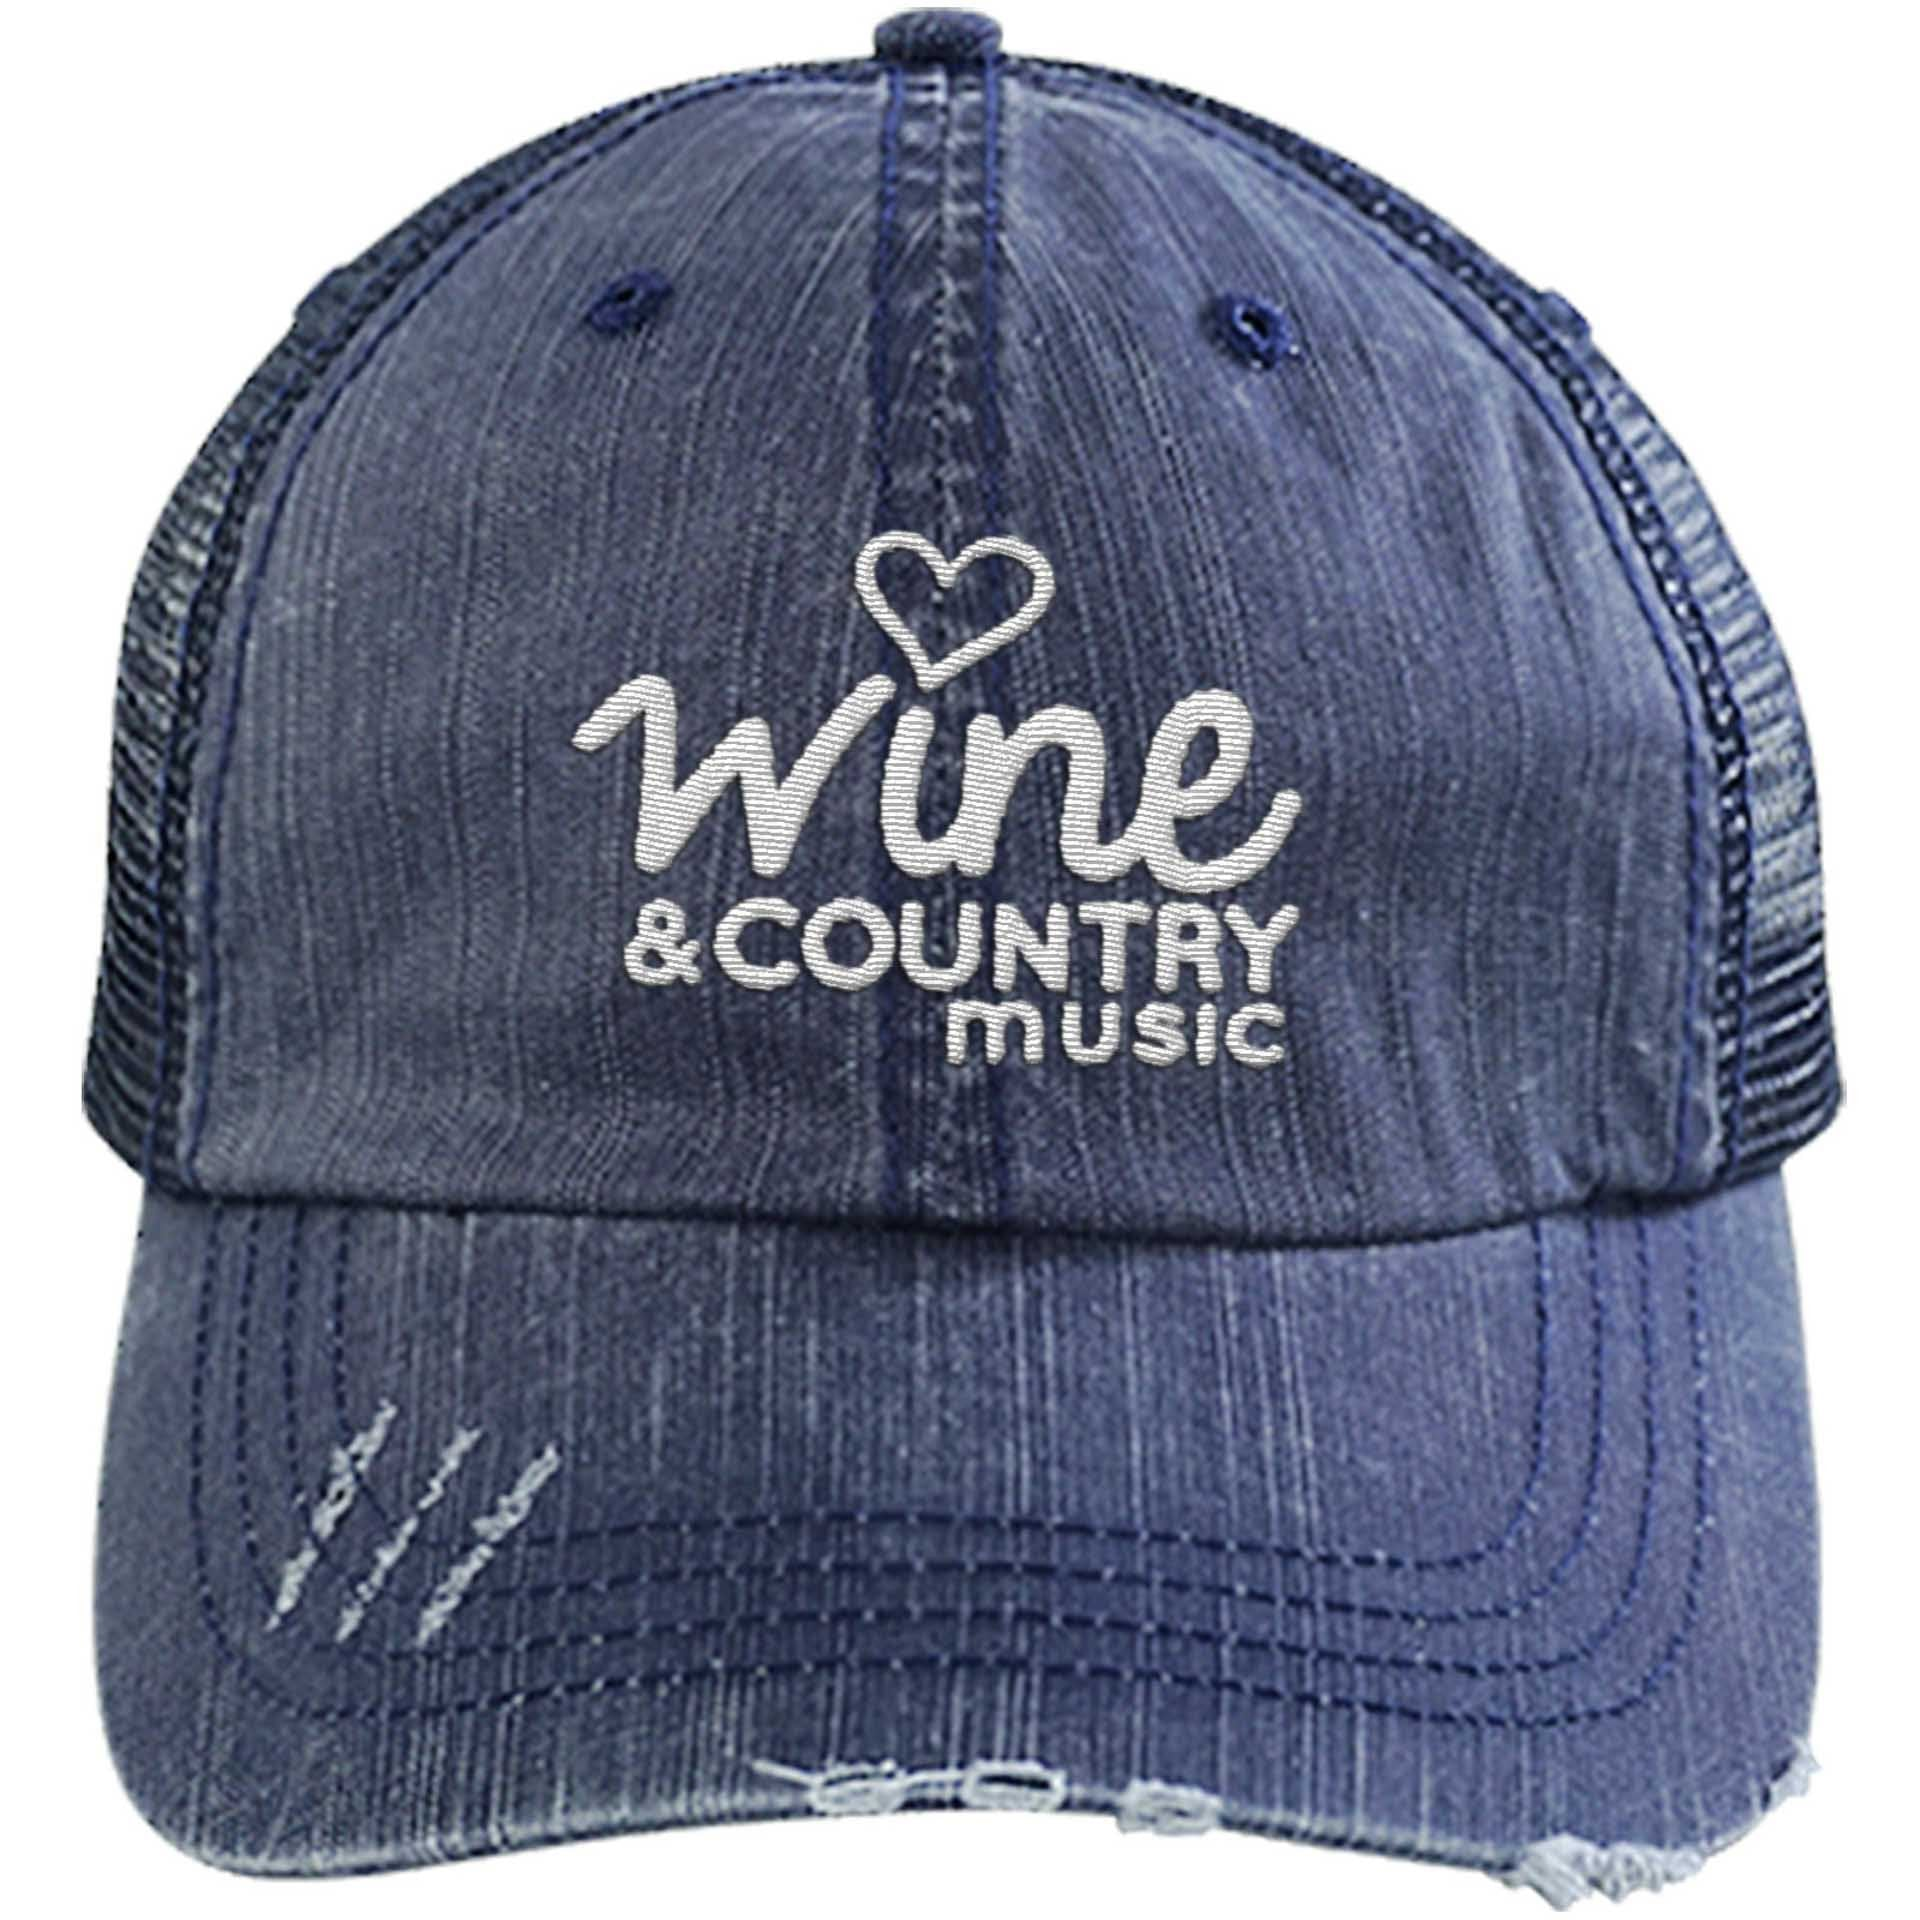 Wine & Country Music 2018 - Distressed Trucker Cap (Mesh Back)